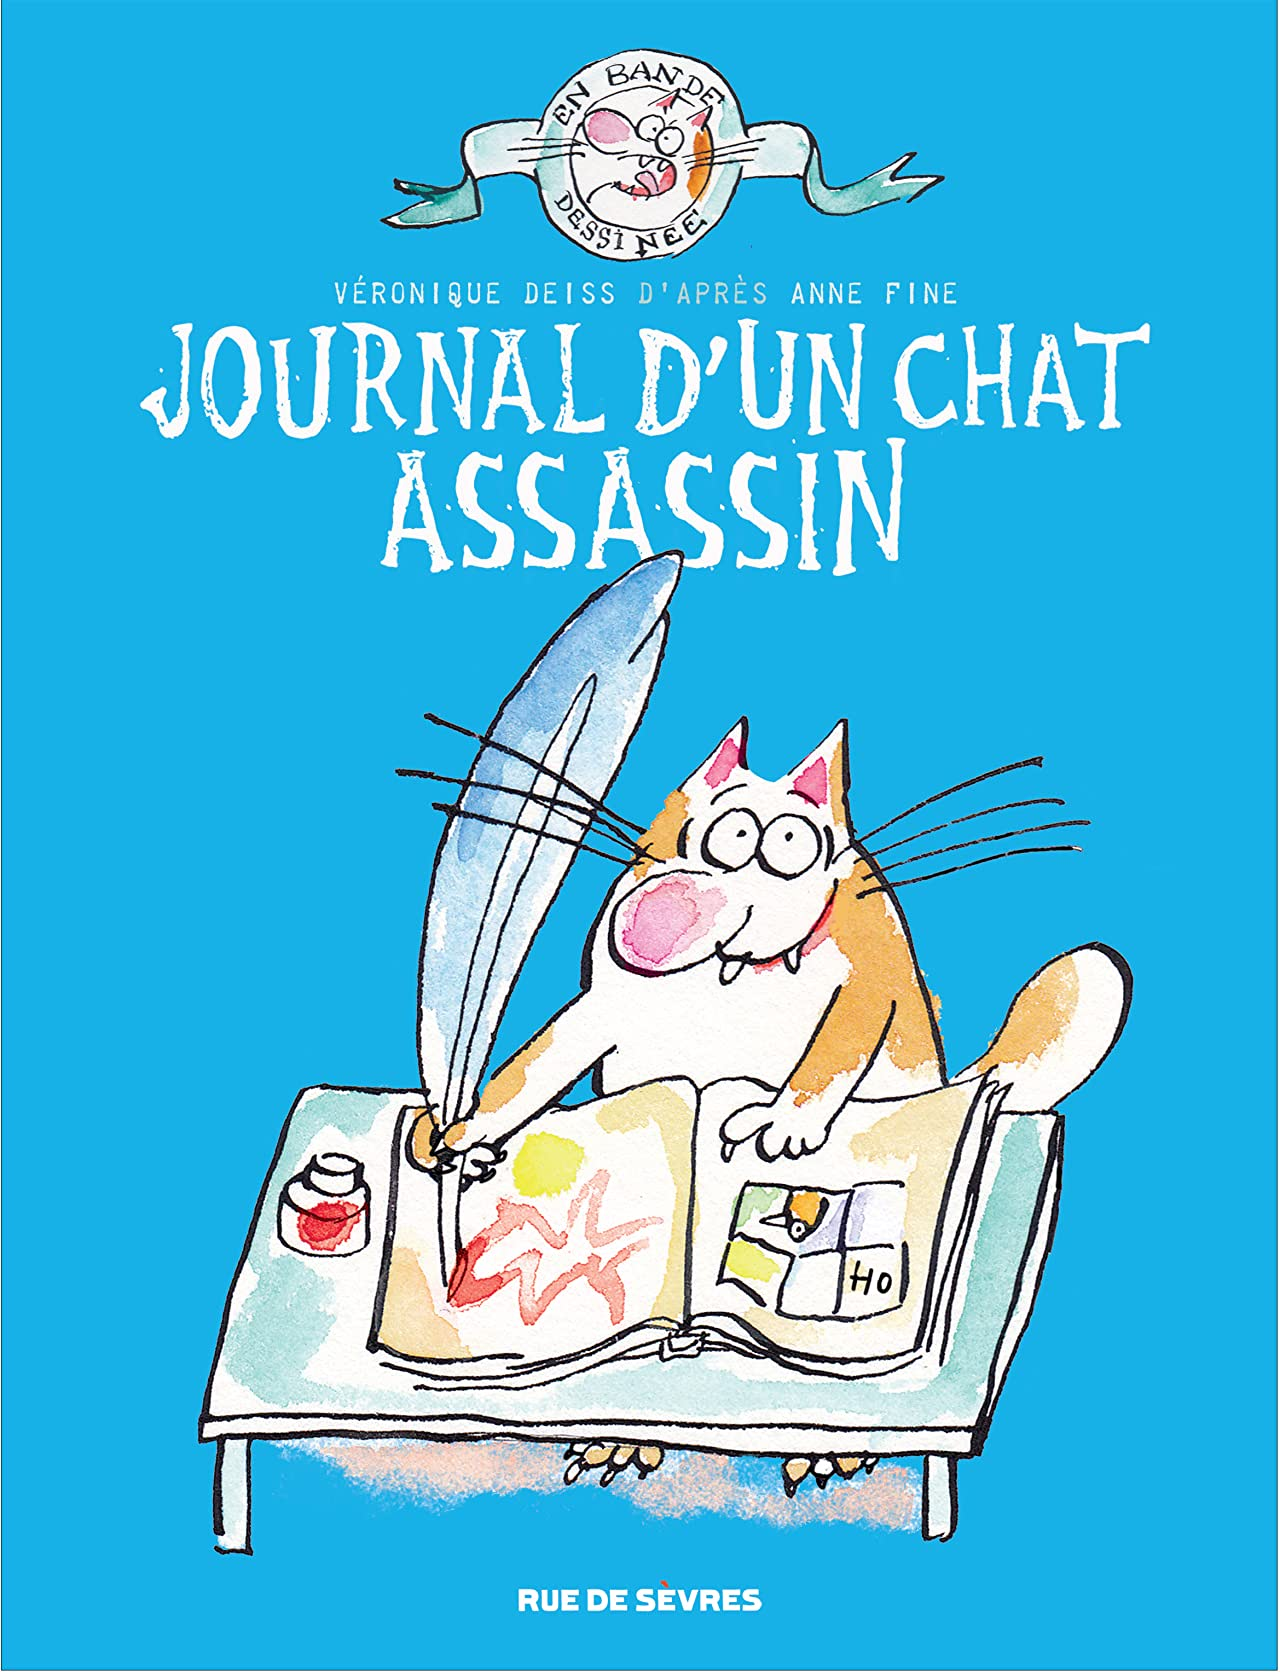 Journal d'un chat assassin Vol. 1